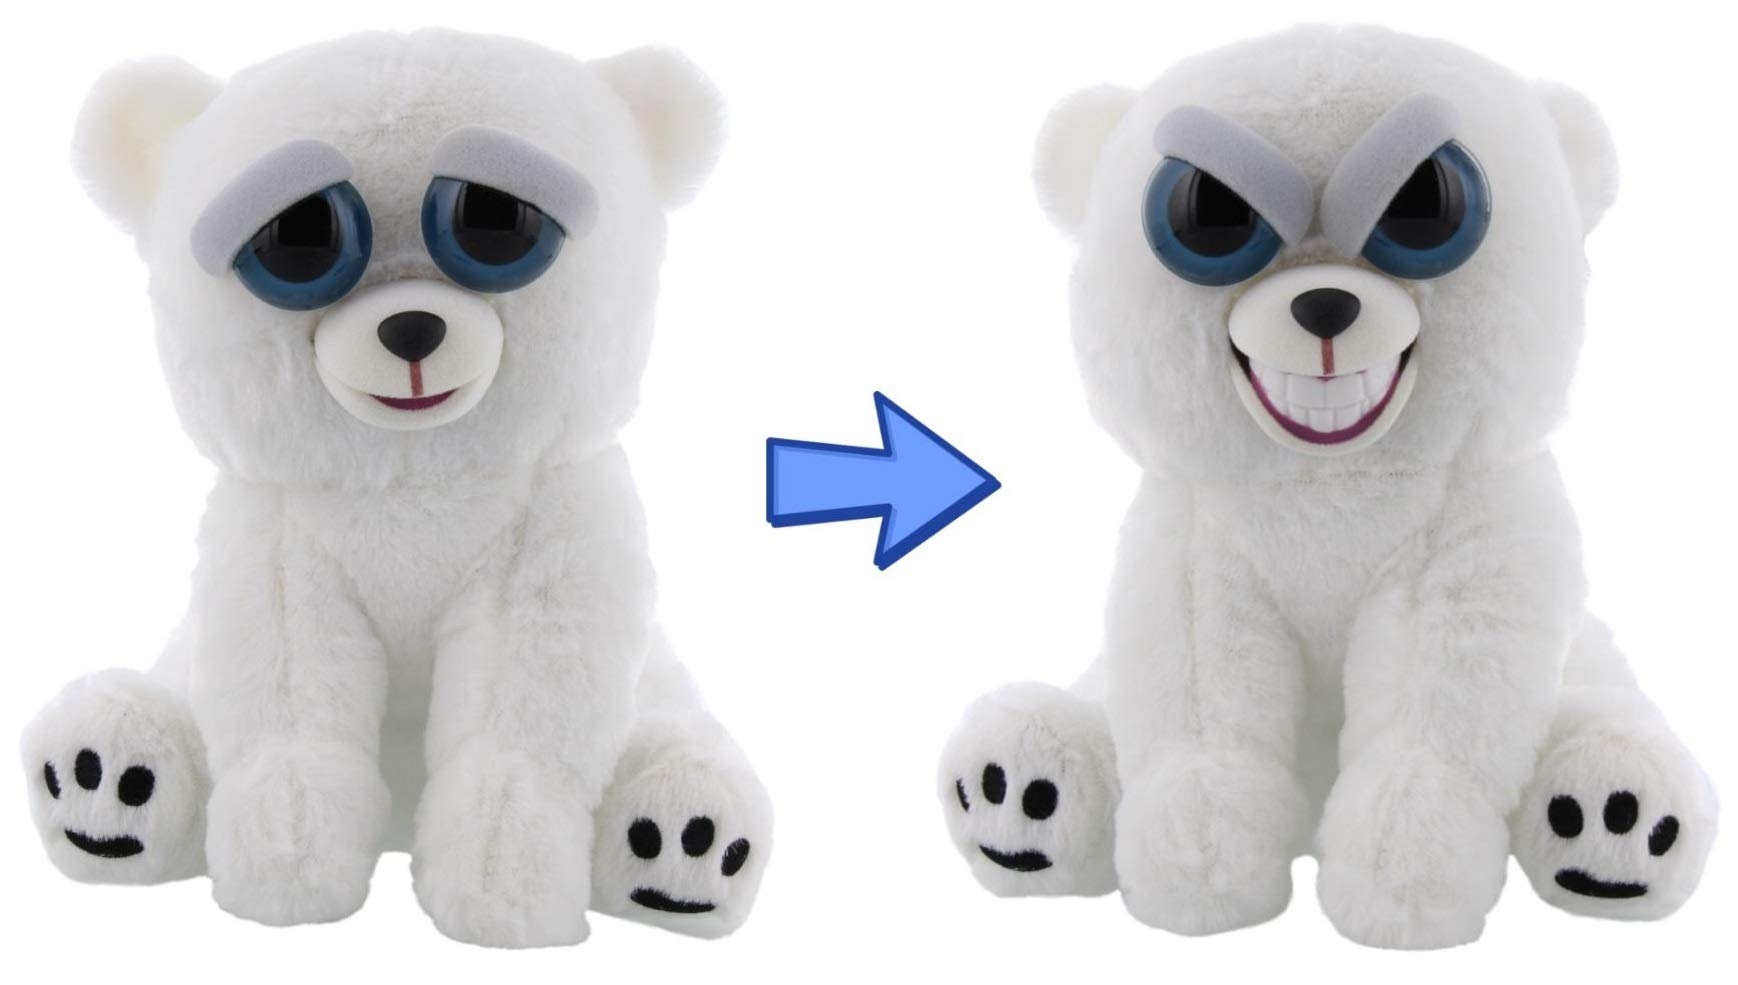 William Mark Feisty Polar Bear by Feisty Pets Expressions, Karl The Snarl, Grin - A Cute, Plush Stuffed Pet Animal That Grins with a Squeeze - Perfect Toys for Friendly Mischief by William Mark